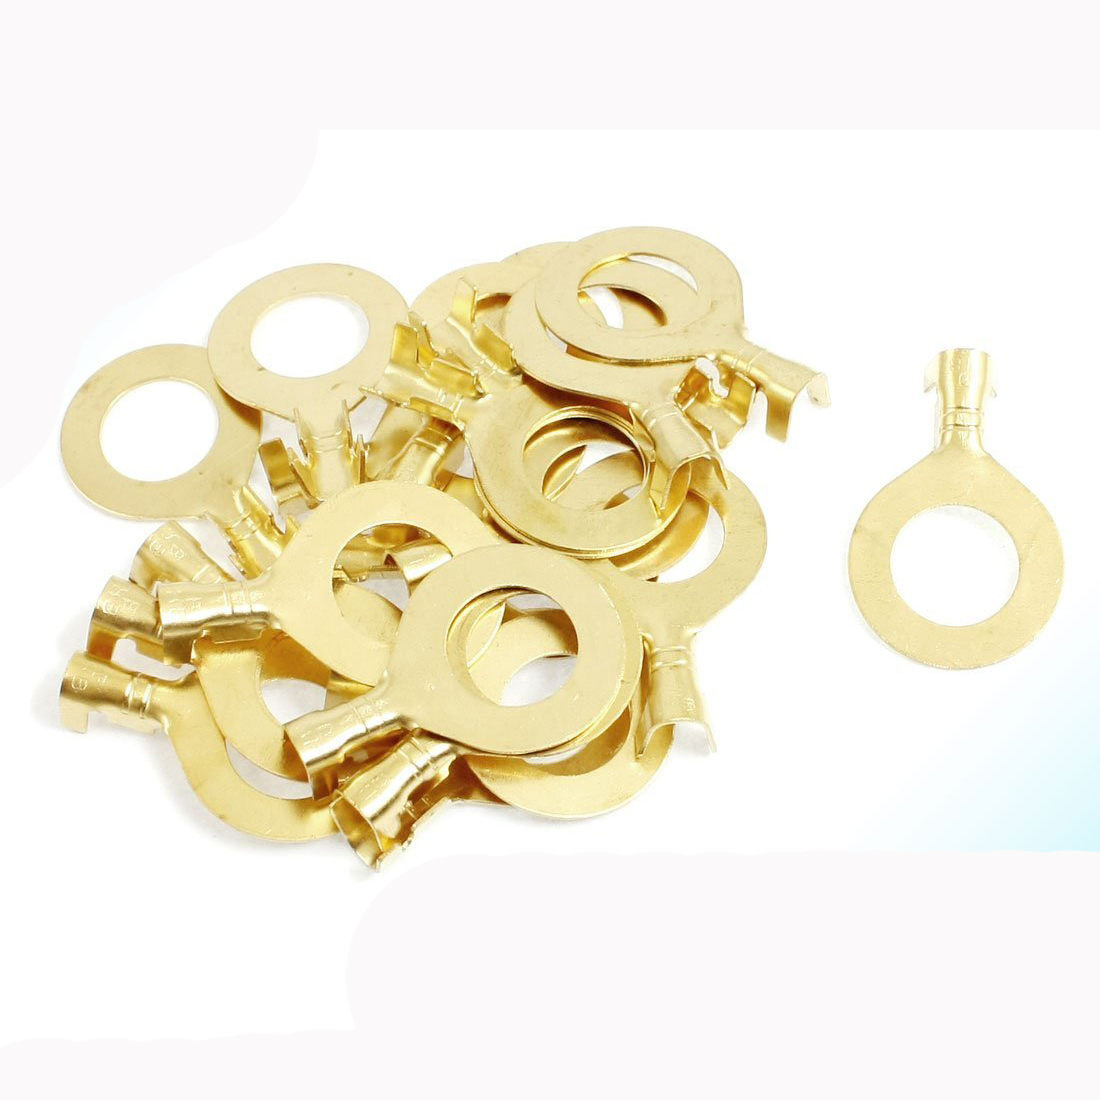 Humorous 2000pcs 4.0 Bullet Crimp Terminal Car Electrical Wire Connector Diameter 4mm Pin Non Insulated 4mm Female Crimp Terminals Home Improvement Electrical Equipments & Supplies